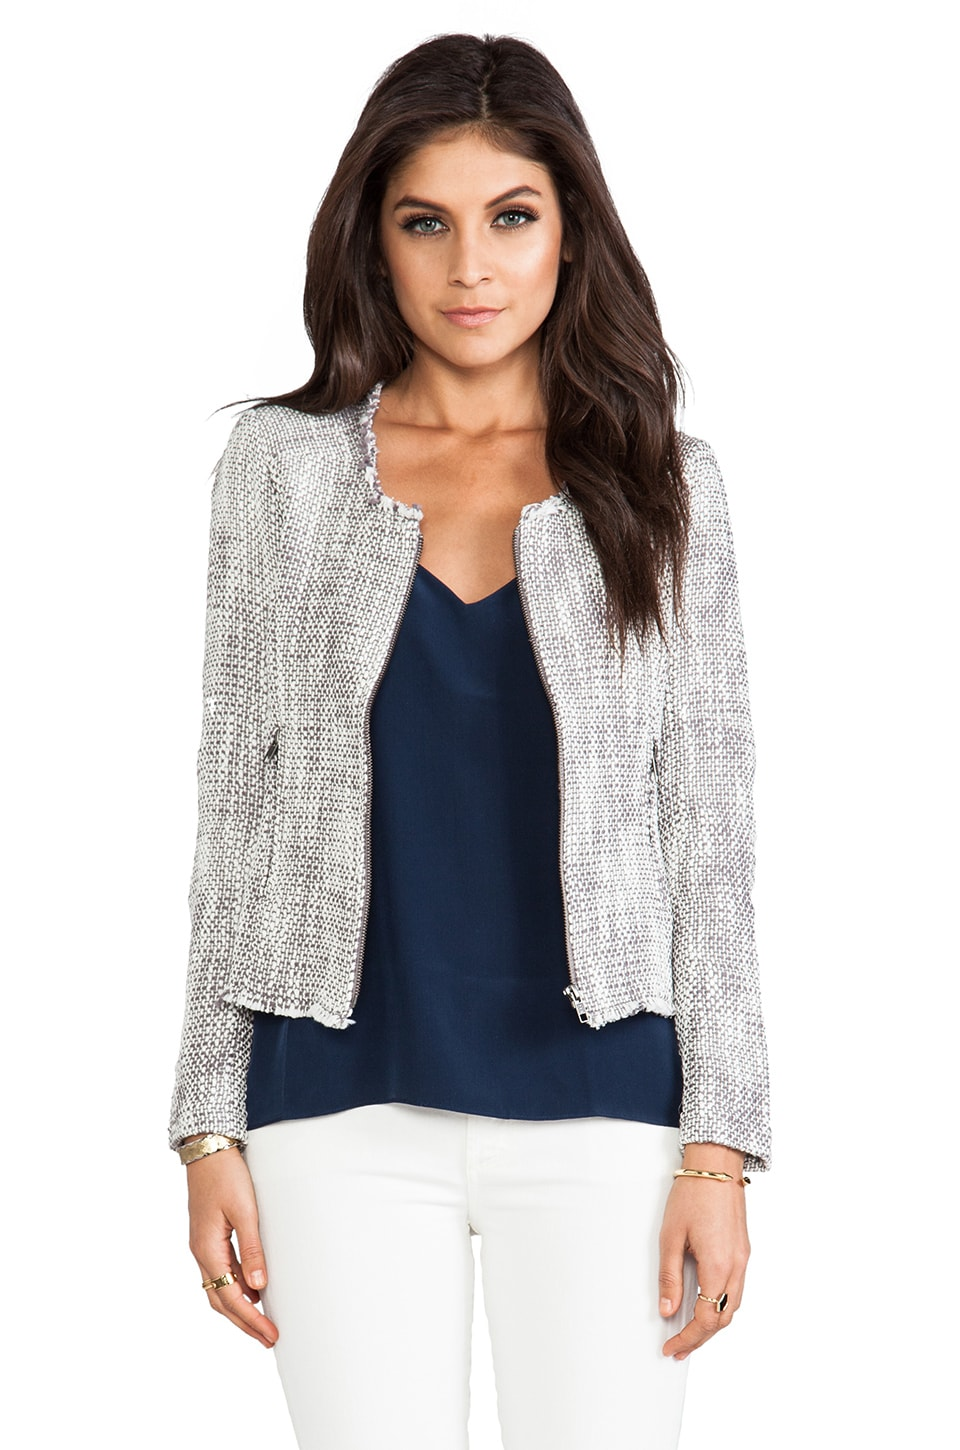 Joie Two Tone Tweed Collis Jacket in Dark Heather Grey